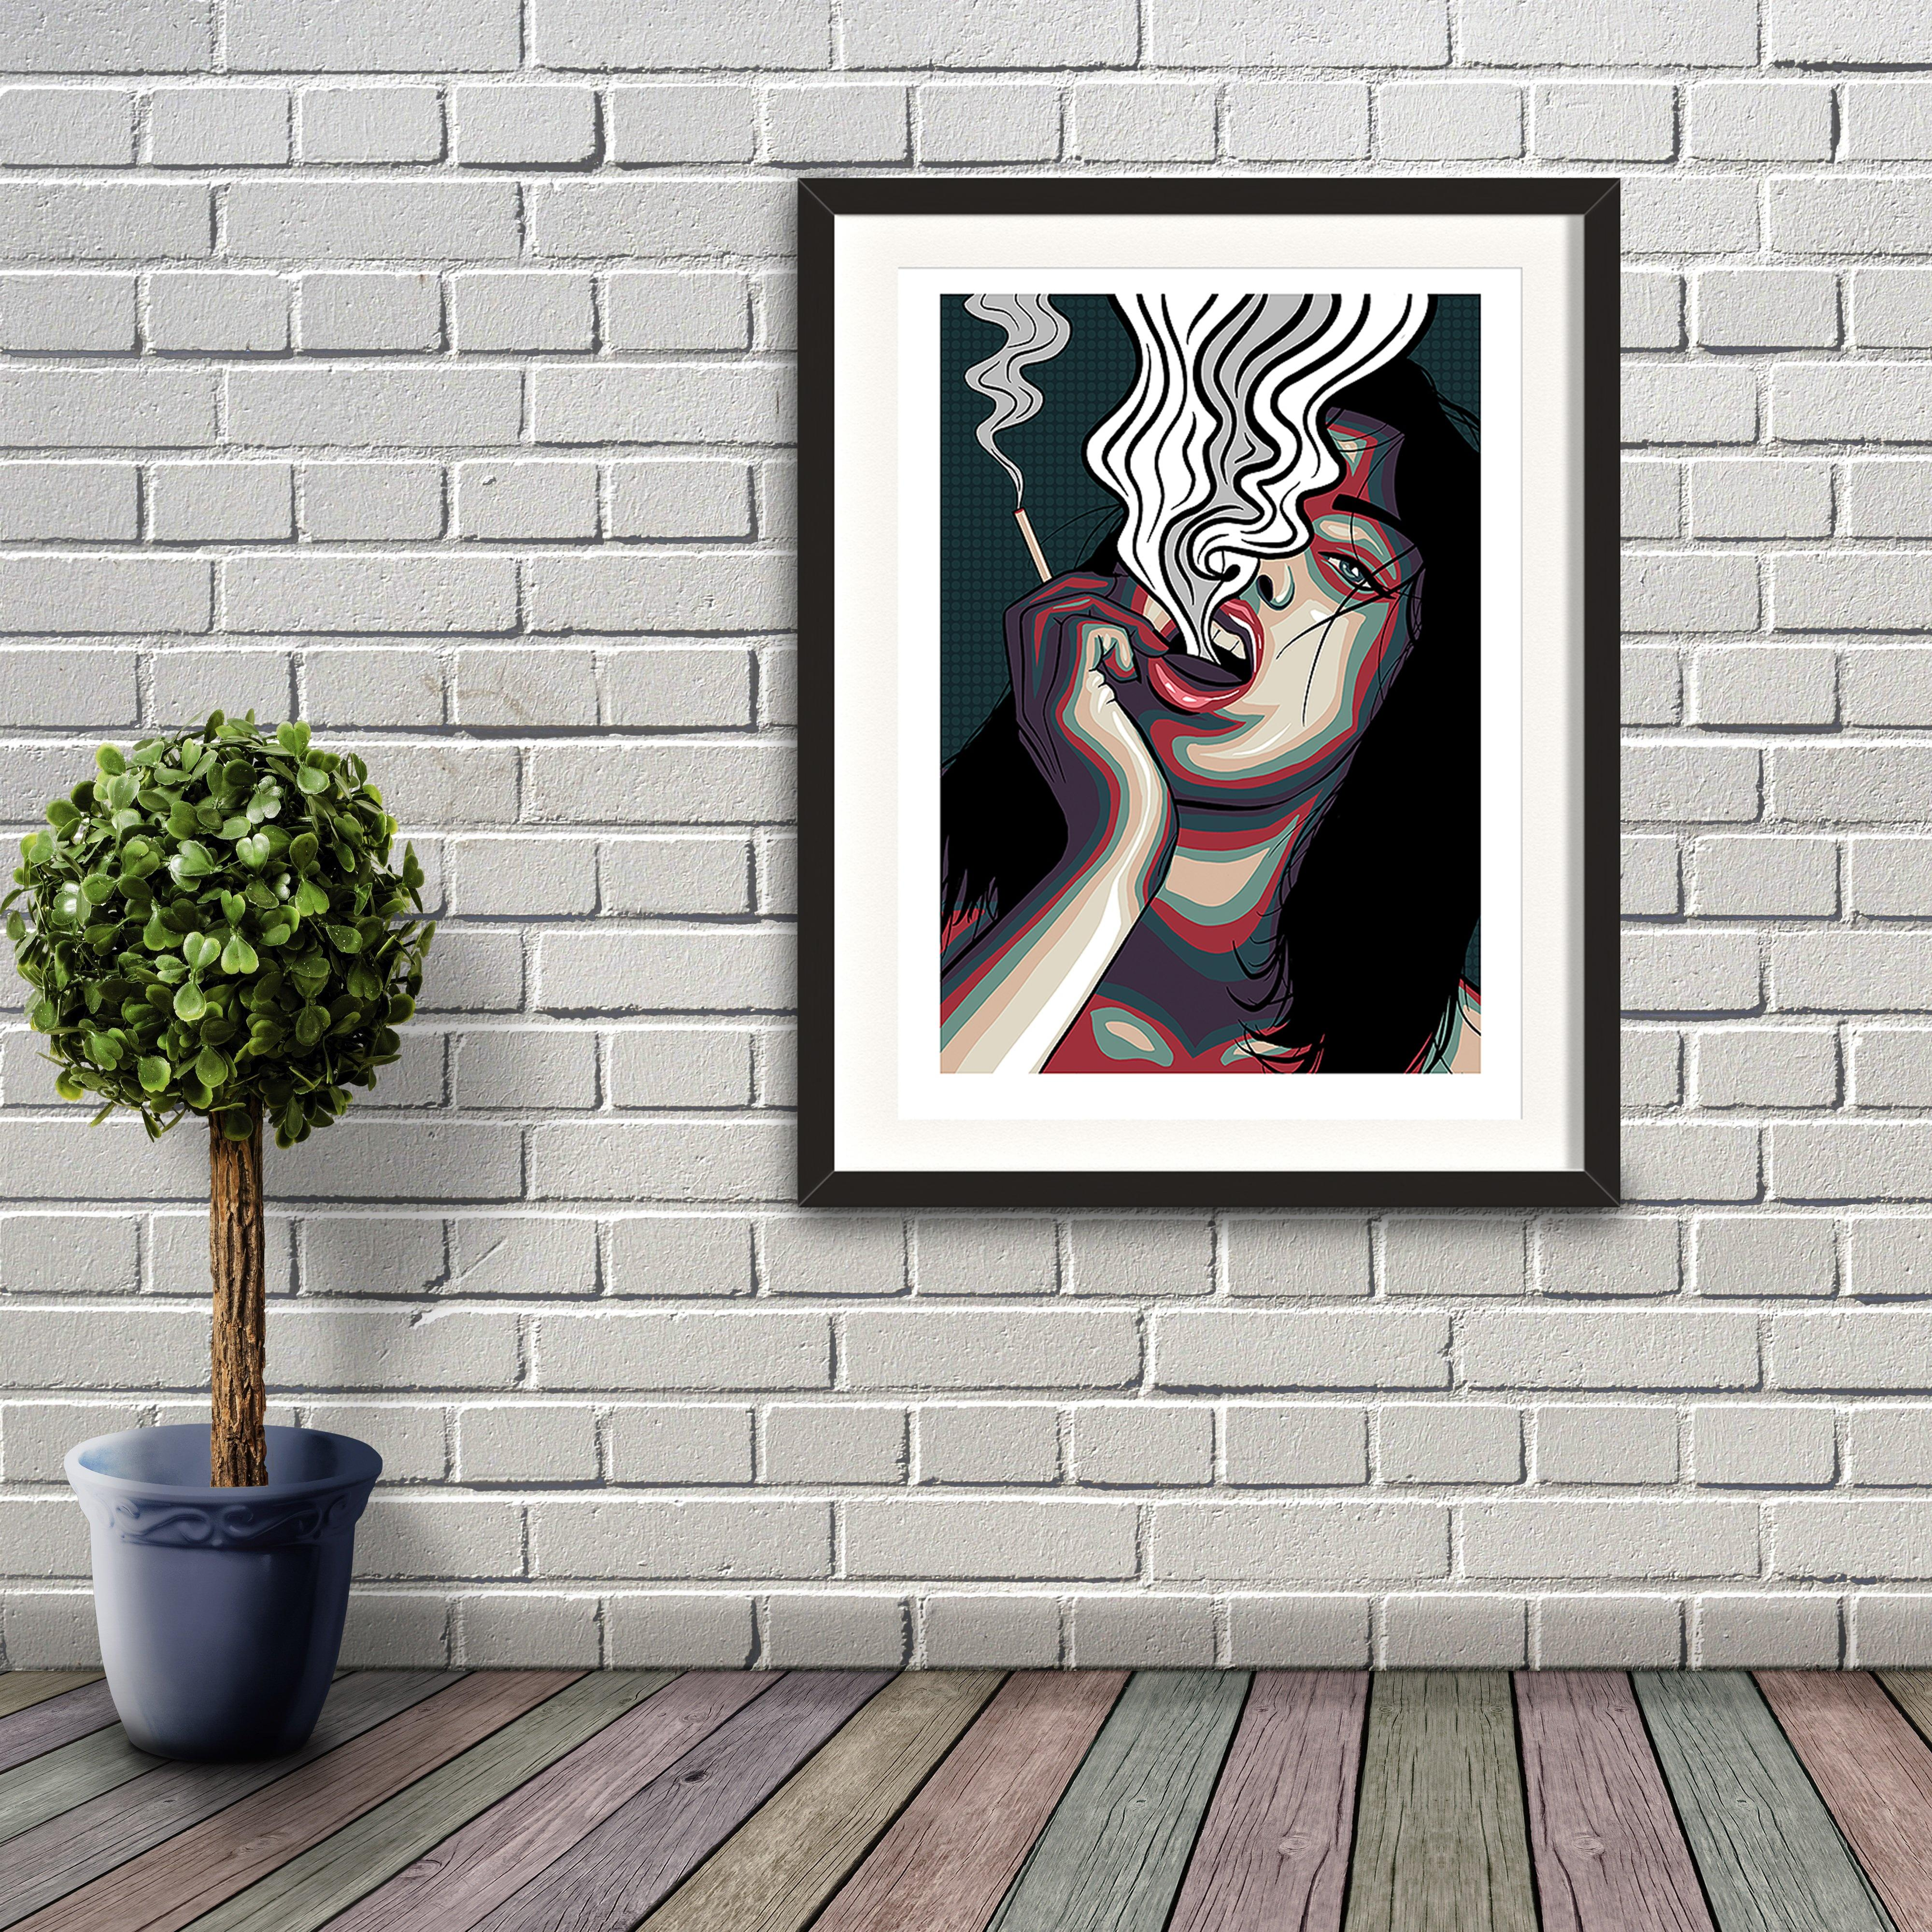 A digital pop art painting by Lily Bourne printed on eco fine art paper titled Release showing showing a female exhale smoke from a cigarette which is holding. Artwork shown is a black frame hanging on a brick wall.